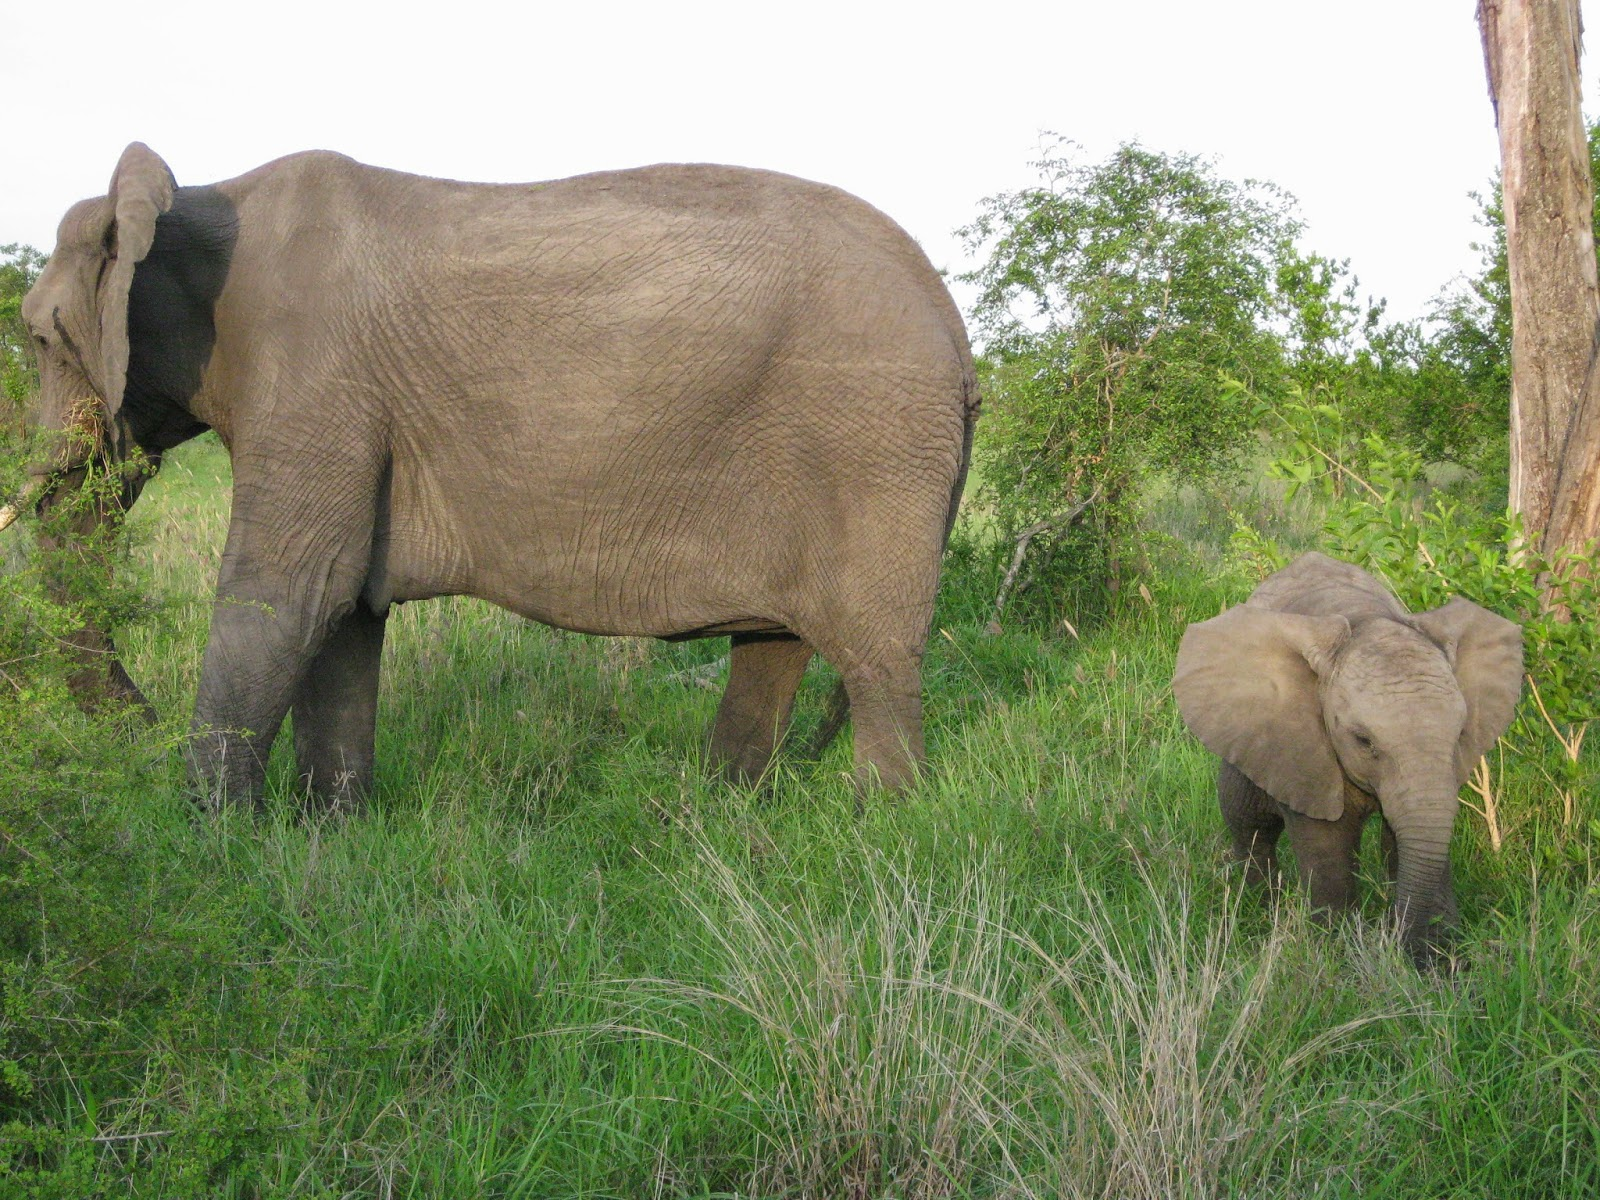 Sabi Sands - The baby elephant is curious